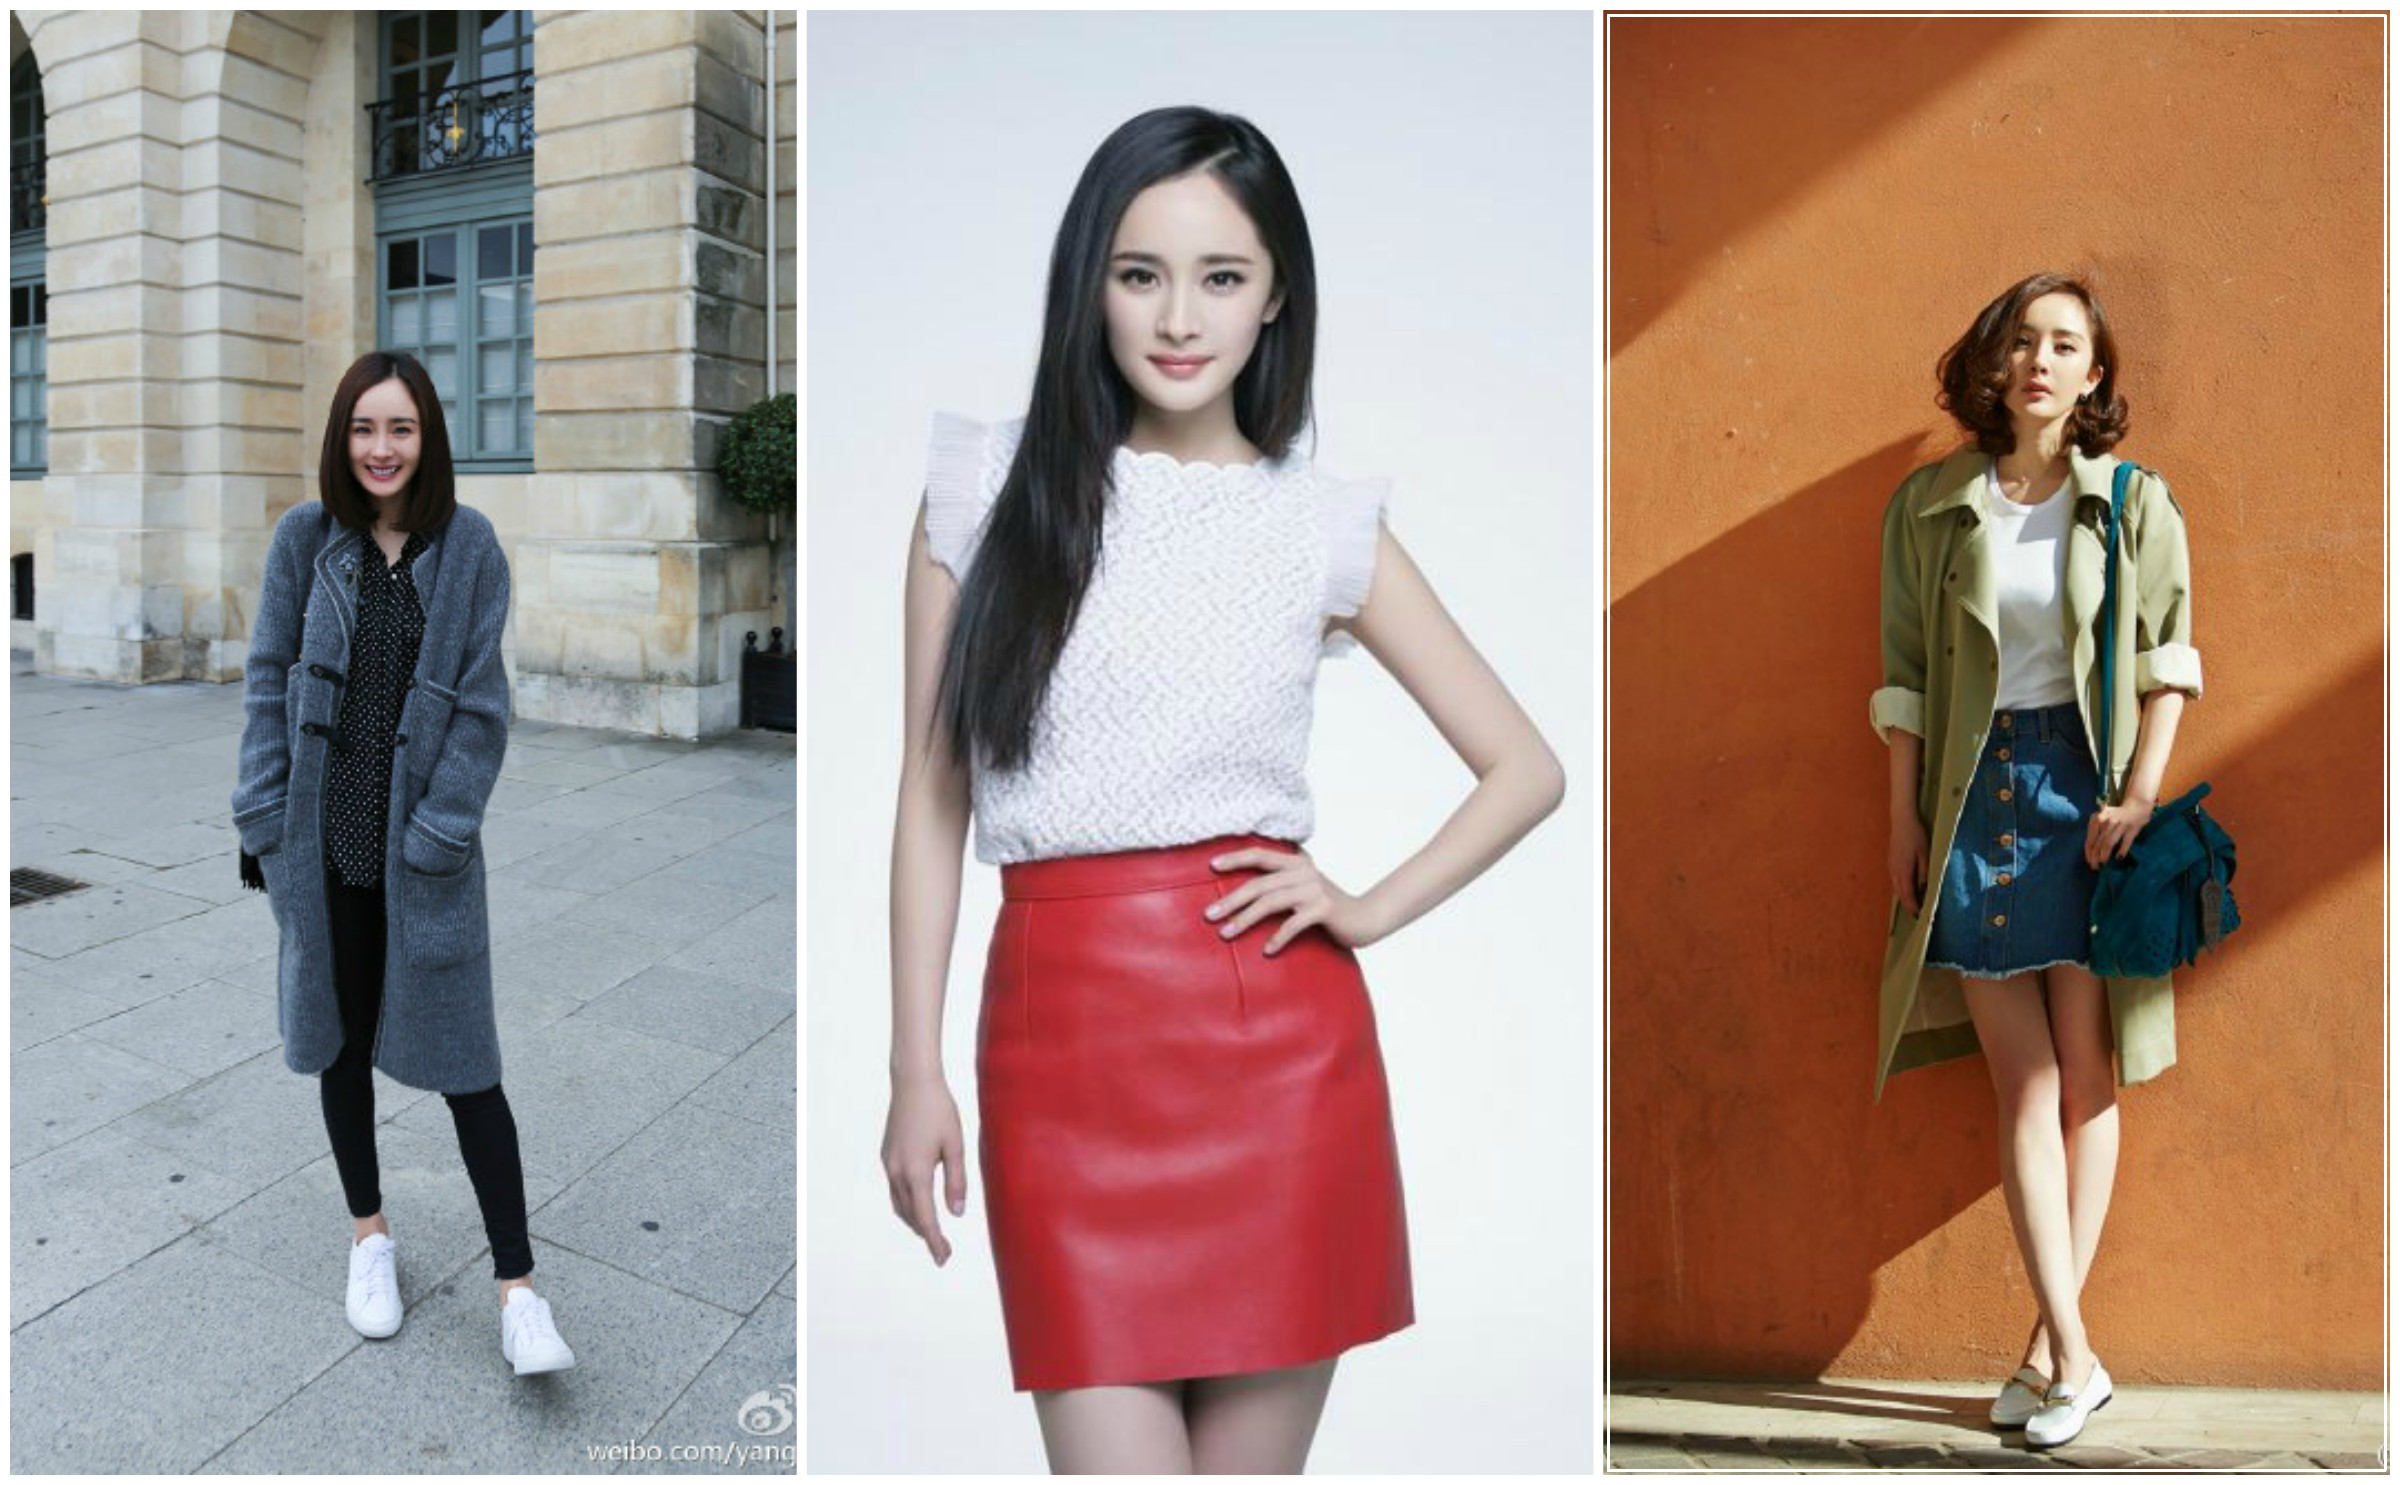 Chinese celebrity street style 3 styles inspired by yang Fashion celebrity street style